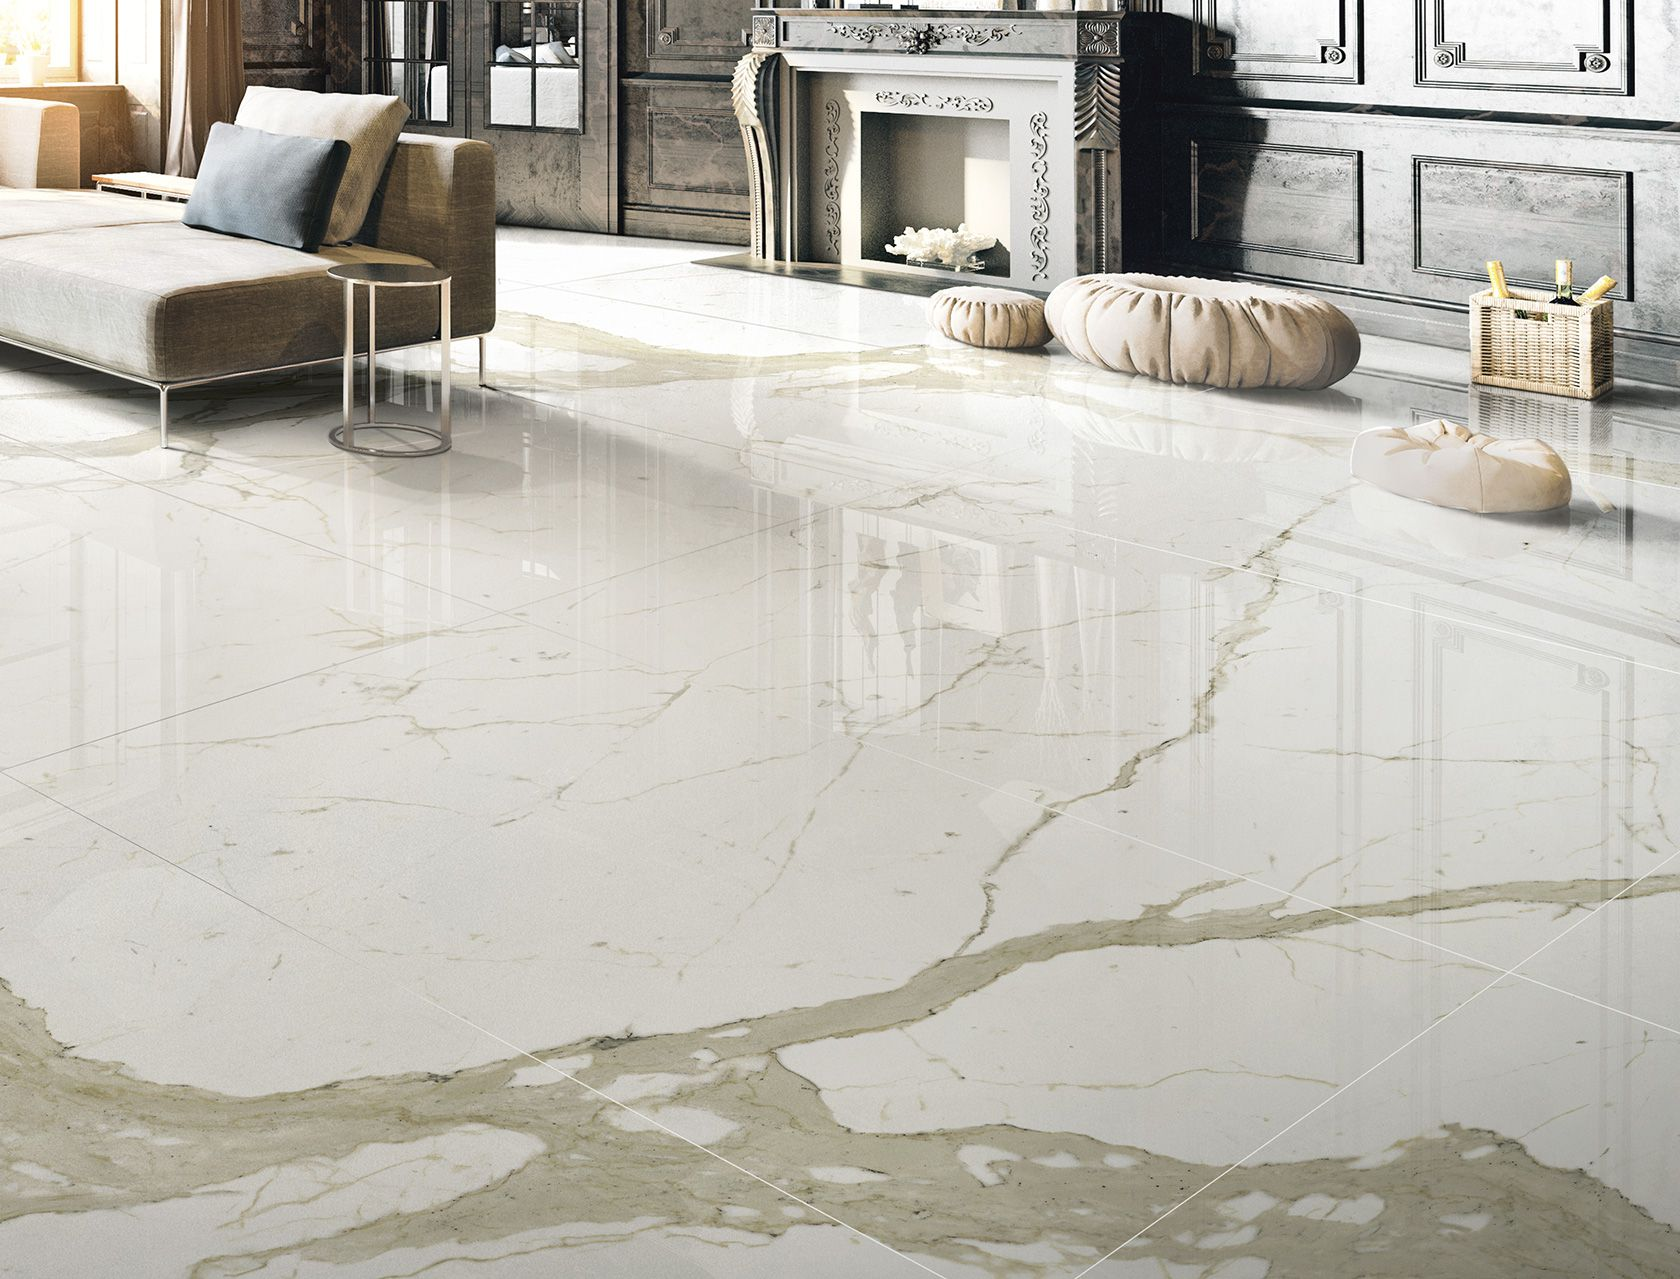 Faq  The expert answers frequently asked questions about ceramic tiles